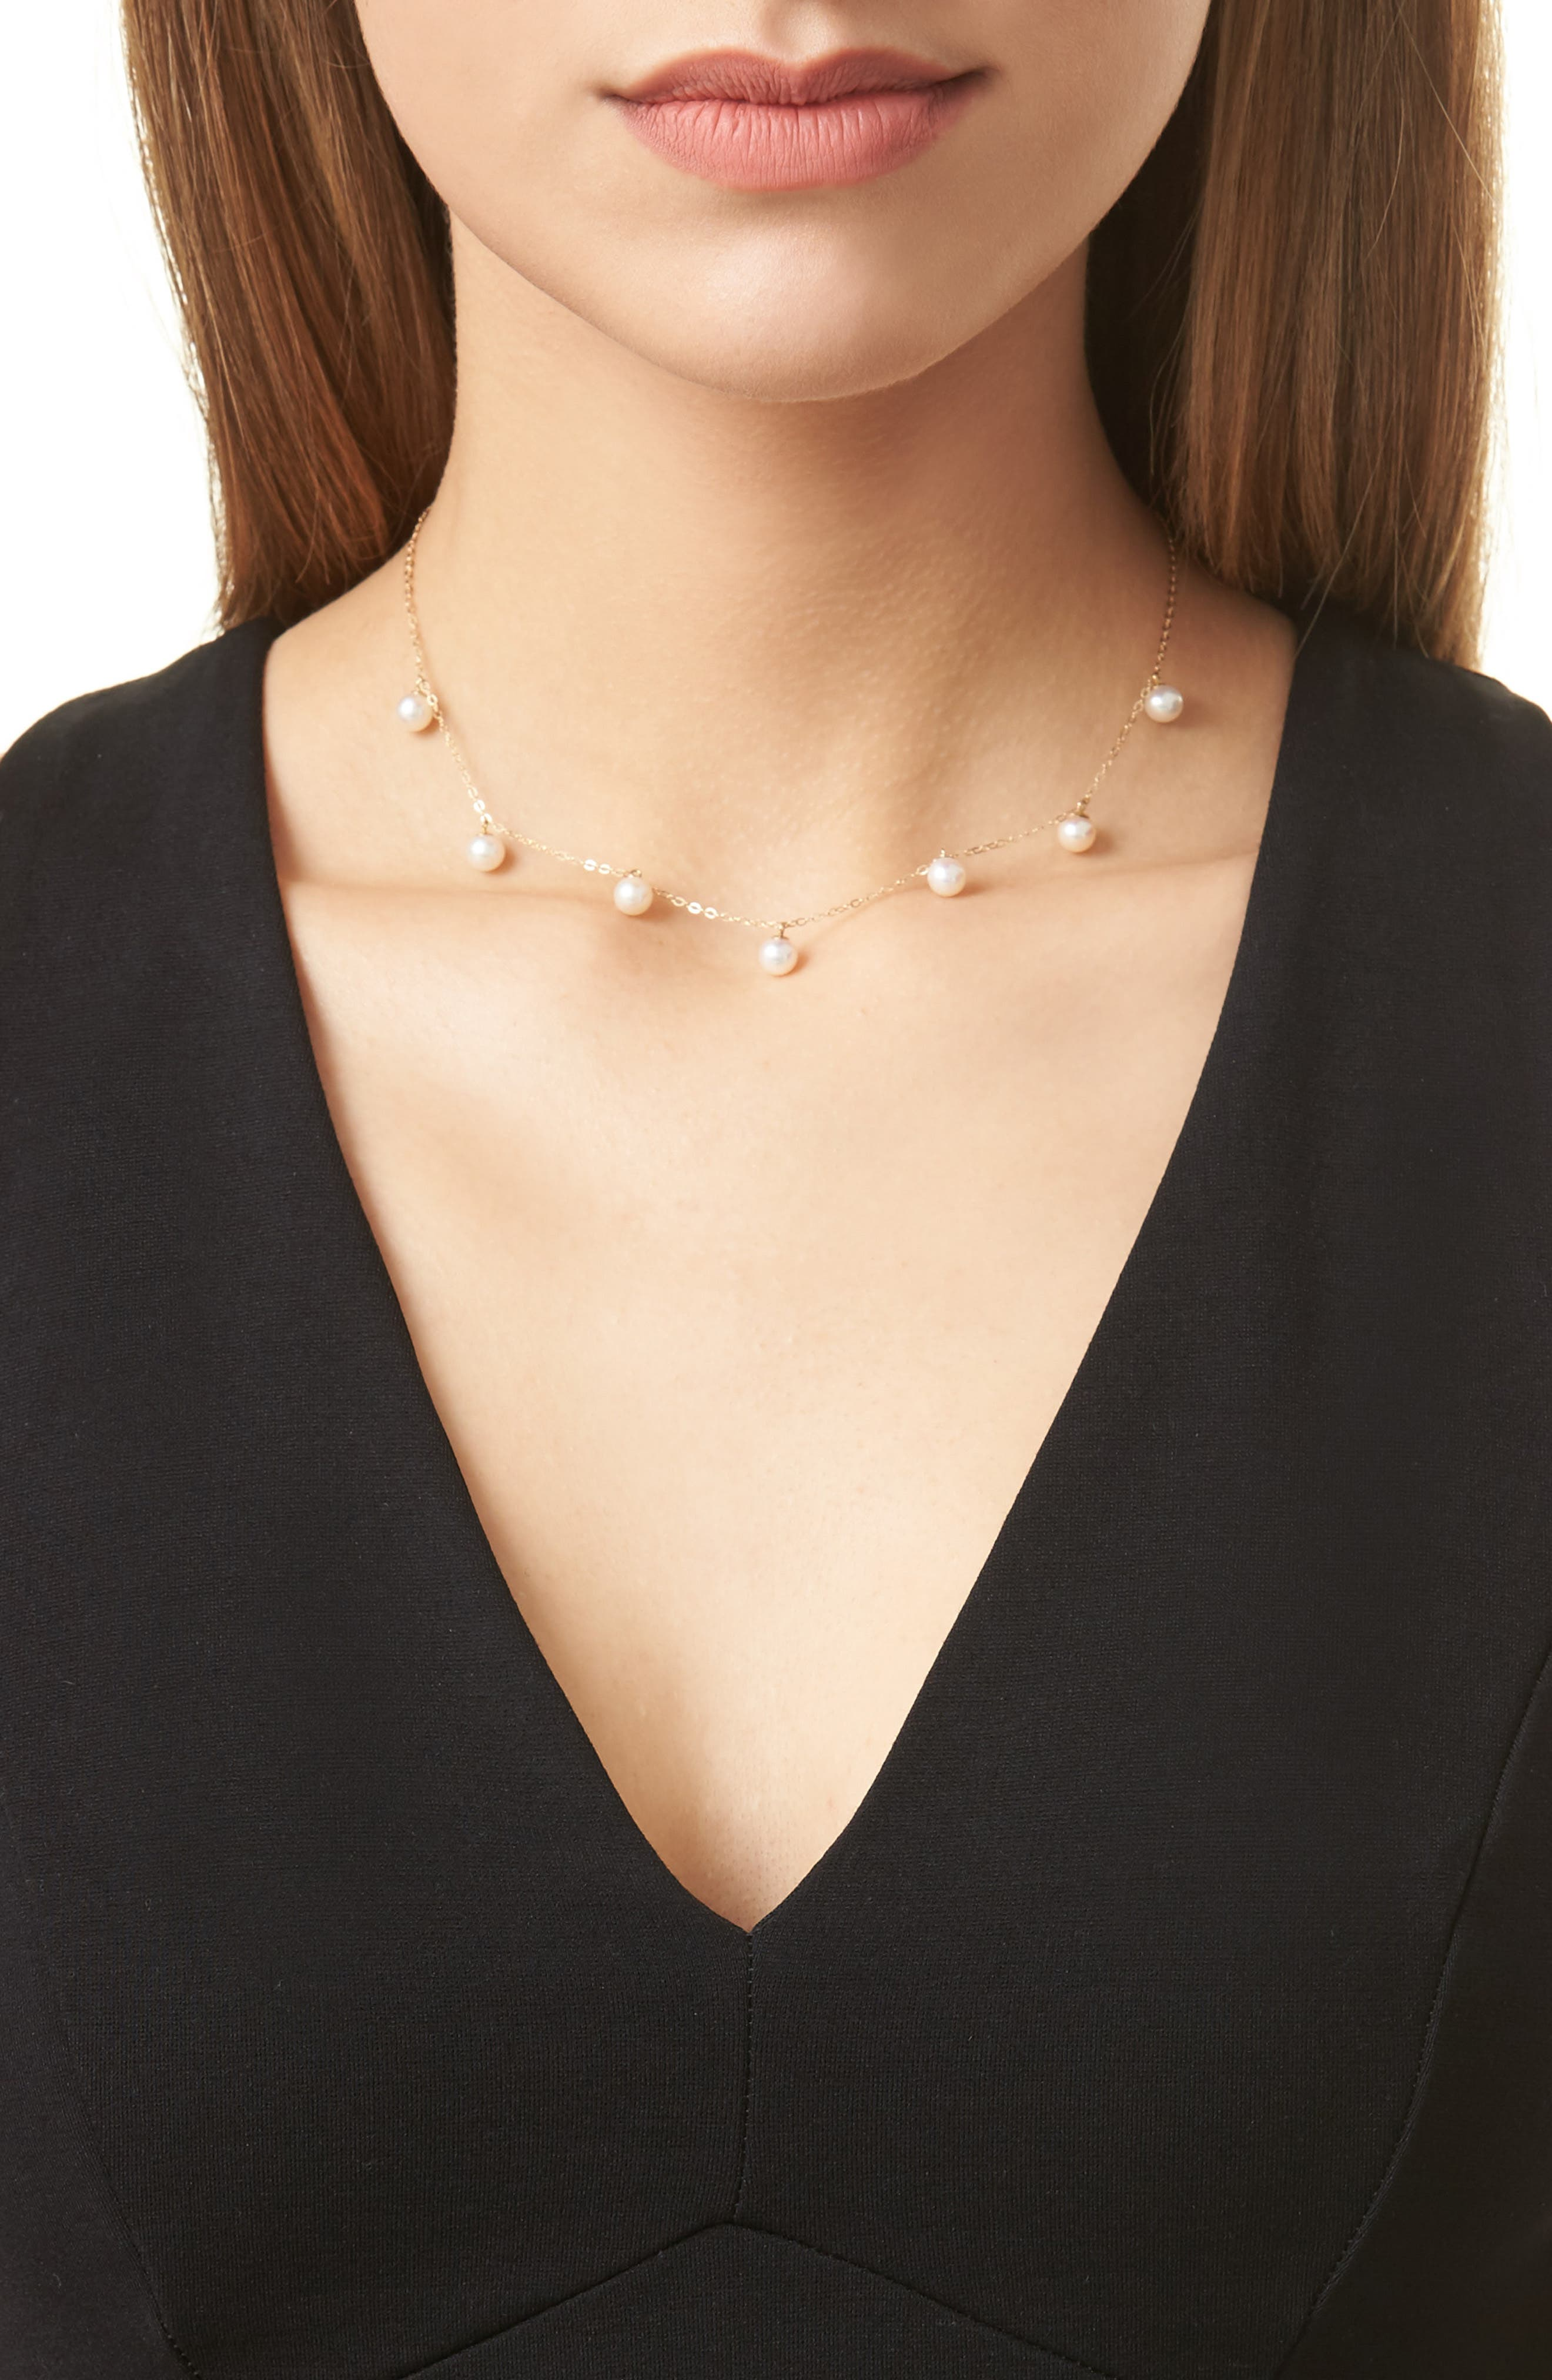 Pearl Collar Necklace,                             Alternate thumbnail 2, color,                             YELLOW GOLD/ PEARL